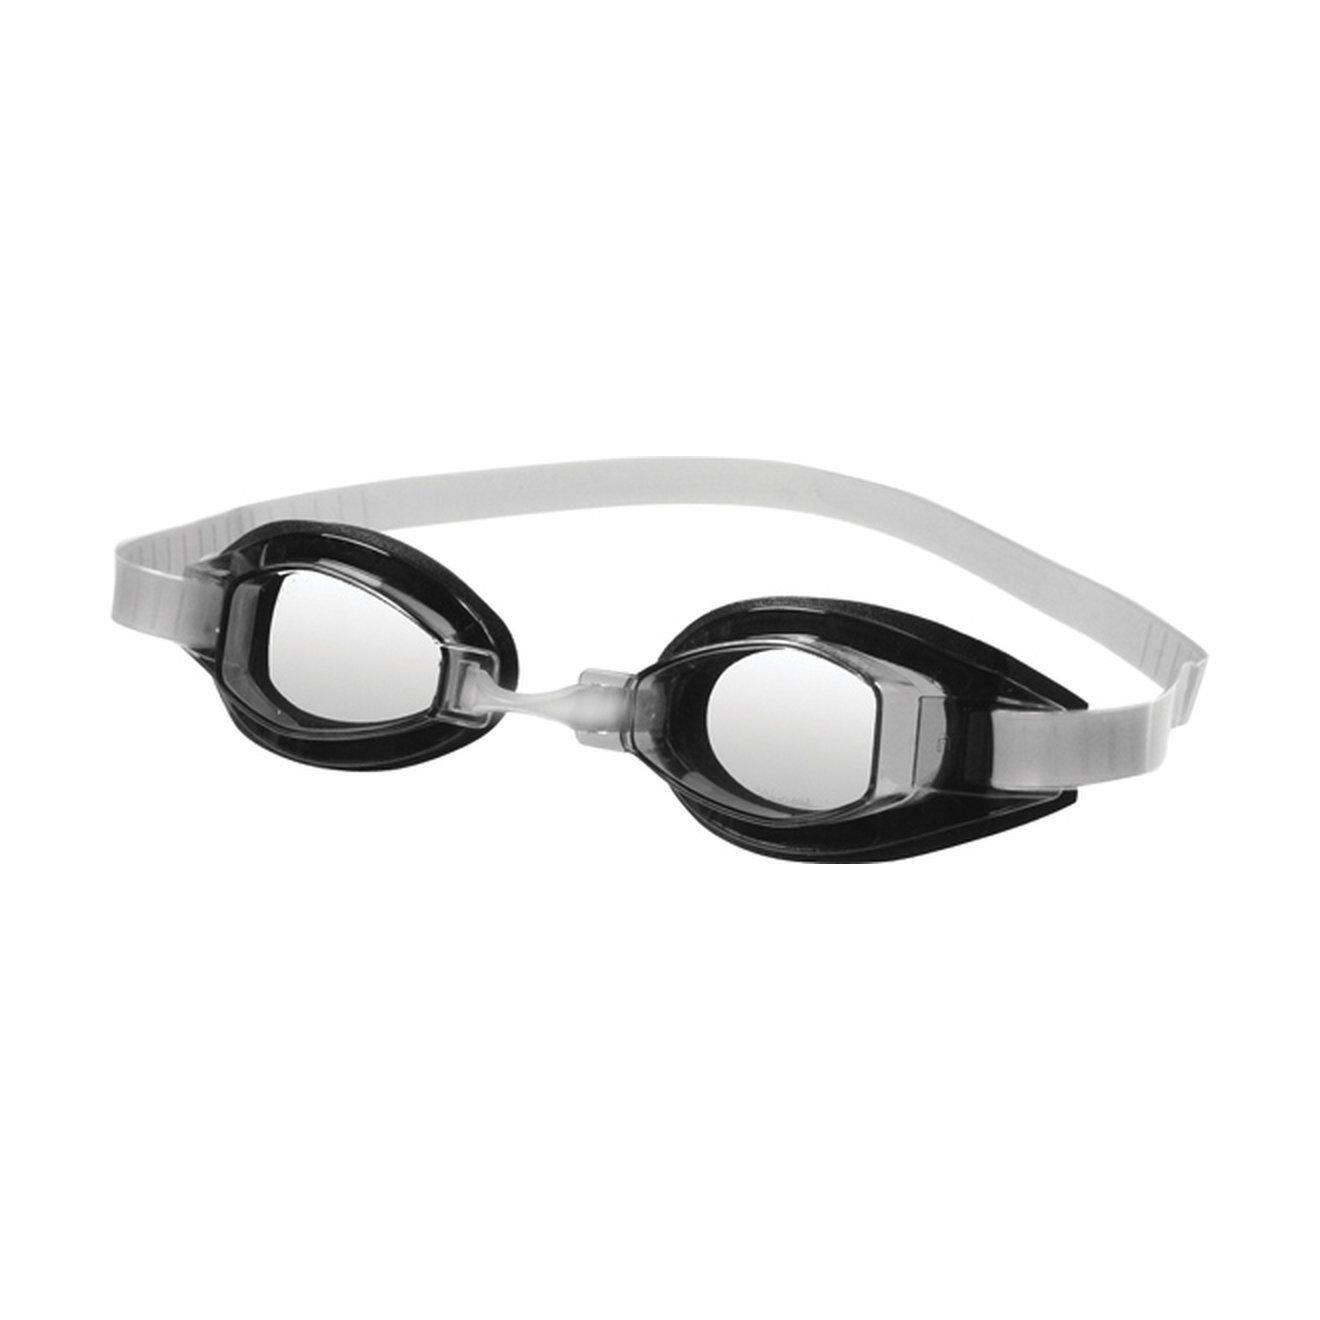 a3080f07b573d Get Quotations · Speedo Sprint Swim-swimming Performance Racing Competition  Goggles Clear New